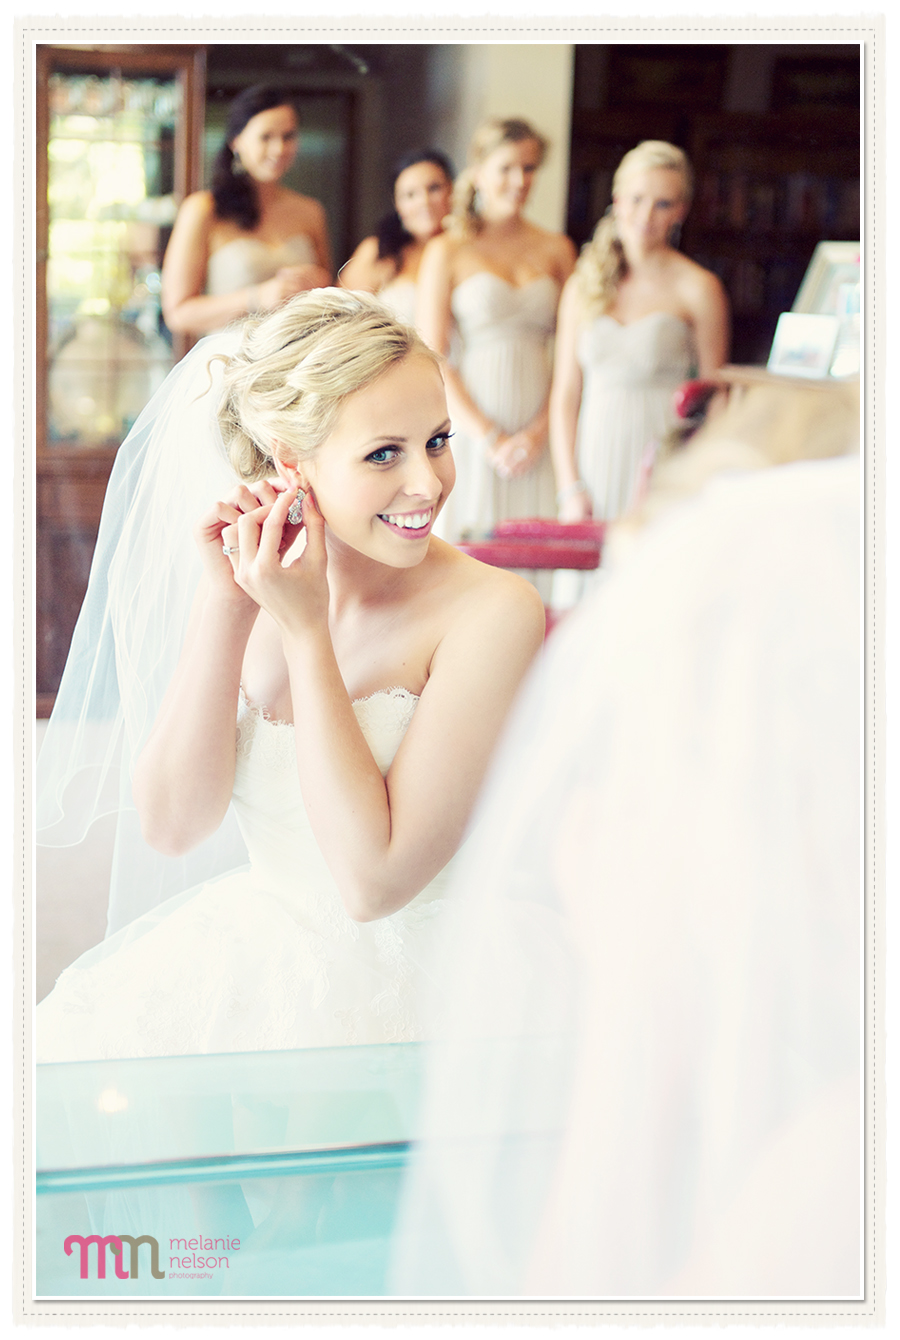 Adelaide-wedding-photographer-07.jpg